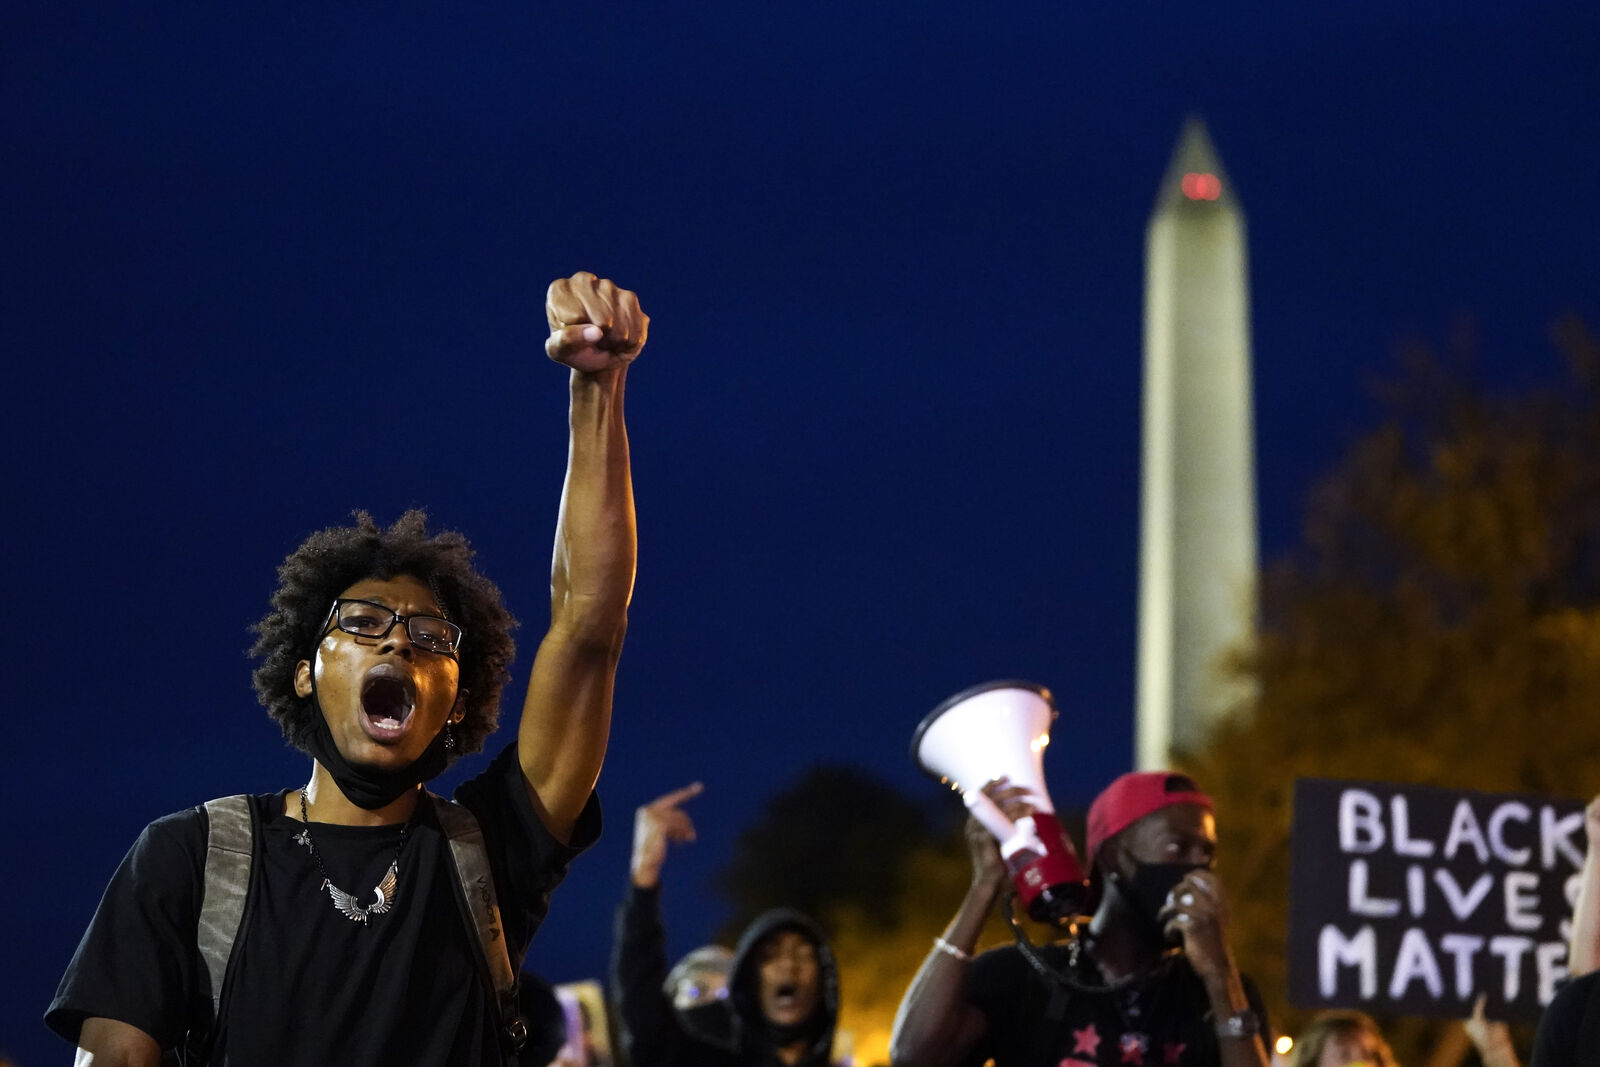 WASHINGTON, DC - SEPTEMBER 23: Demonstrators march near the White House in protest following a Kentucky grand jury decision in the Breonna Taylor case on September 23, 2020 in Washington, DC. A Kentucky grand jury indicted one police officer involved in the shooting of Breonna Taylor with 3 counts of wanton endangerment. No officers were indicted on charges in connection to Taylor's death. (Photo by Drew Angerer/Getty Images)